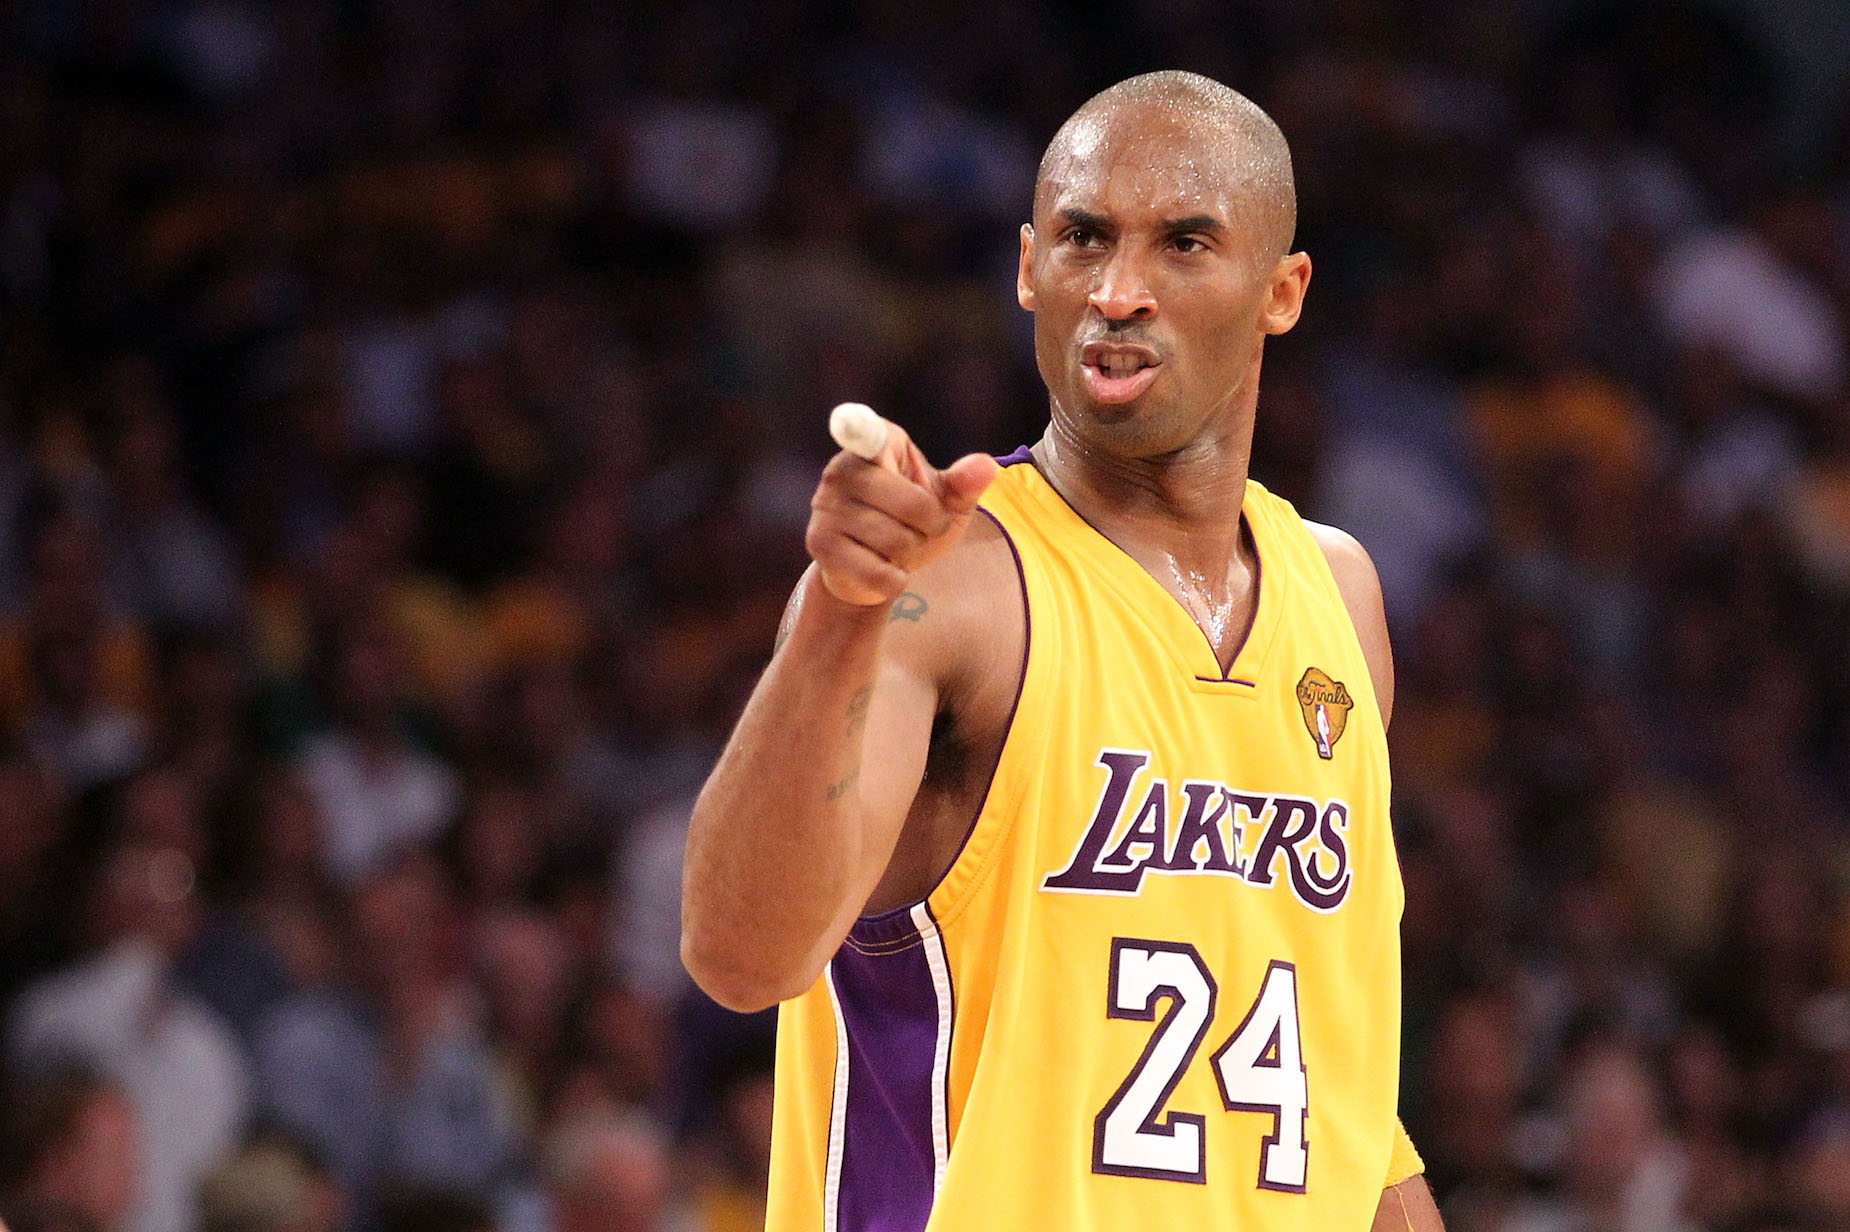 During his childhood in Italy, Kobe Bryant was the least popular player on his basketball team.